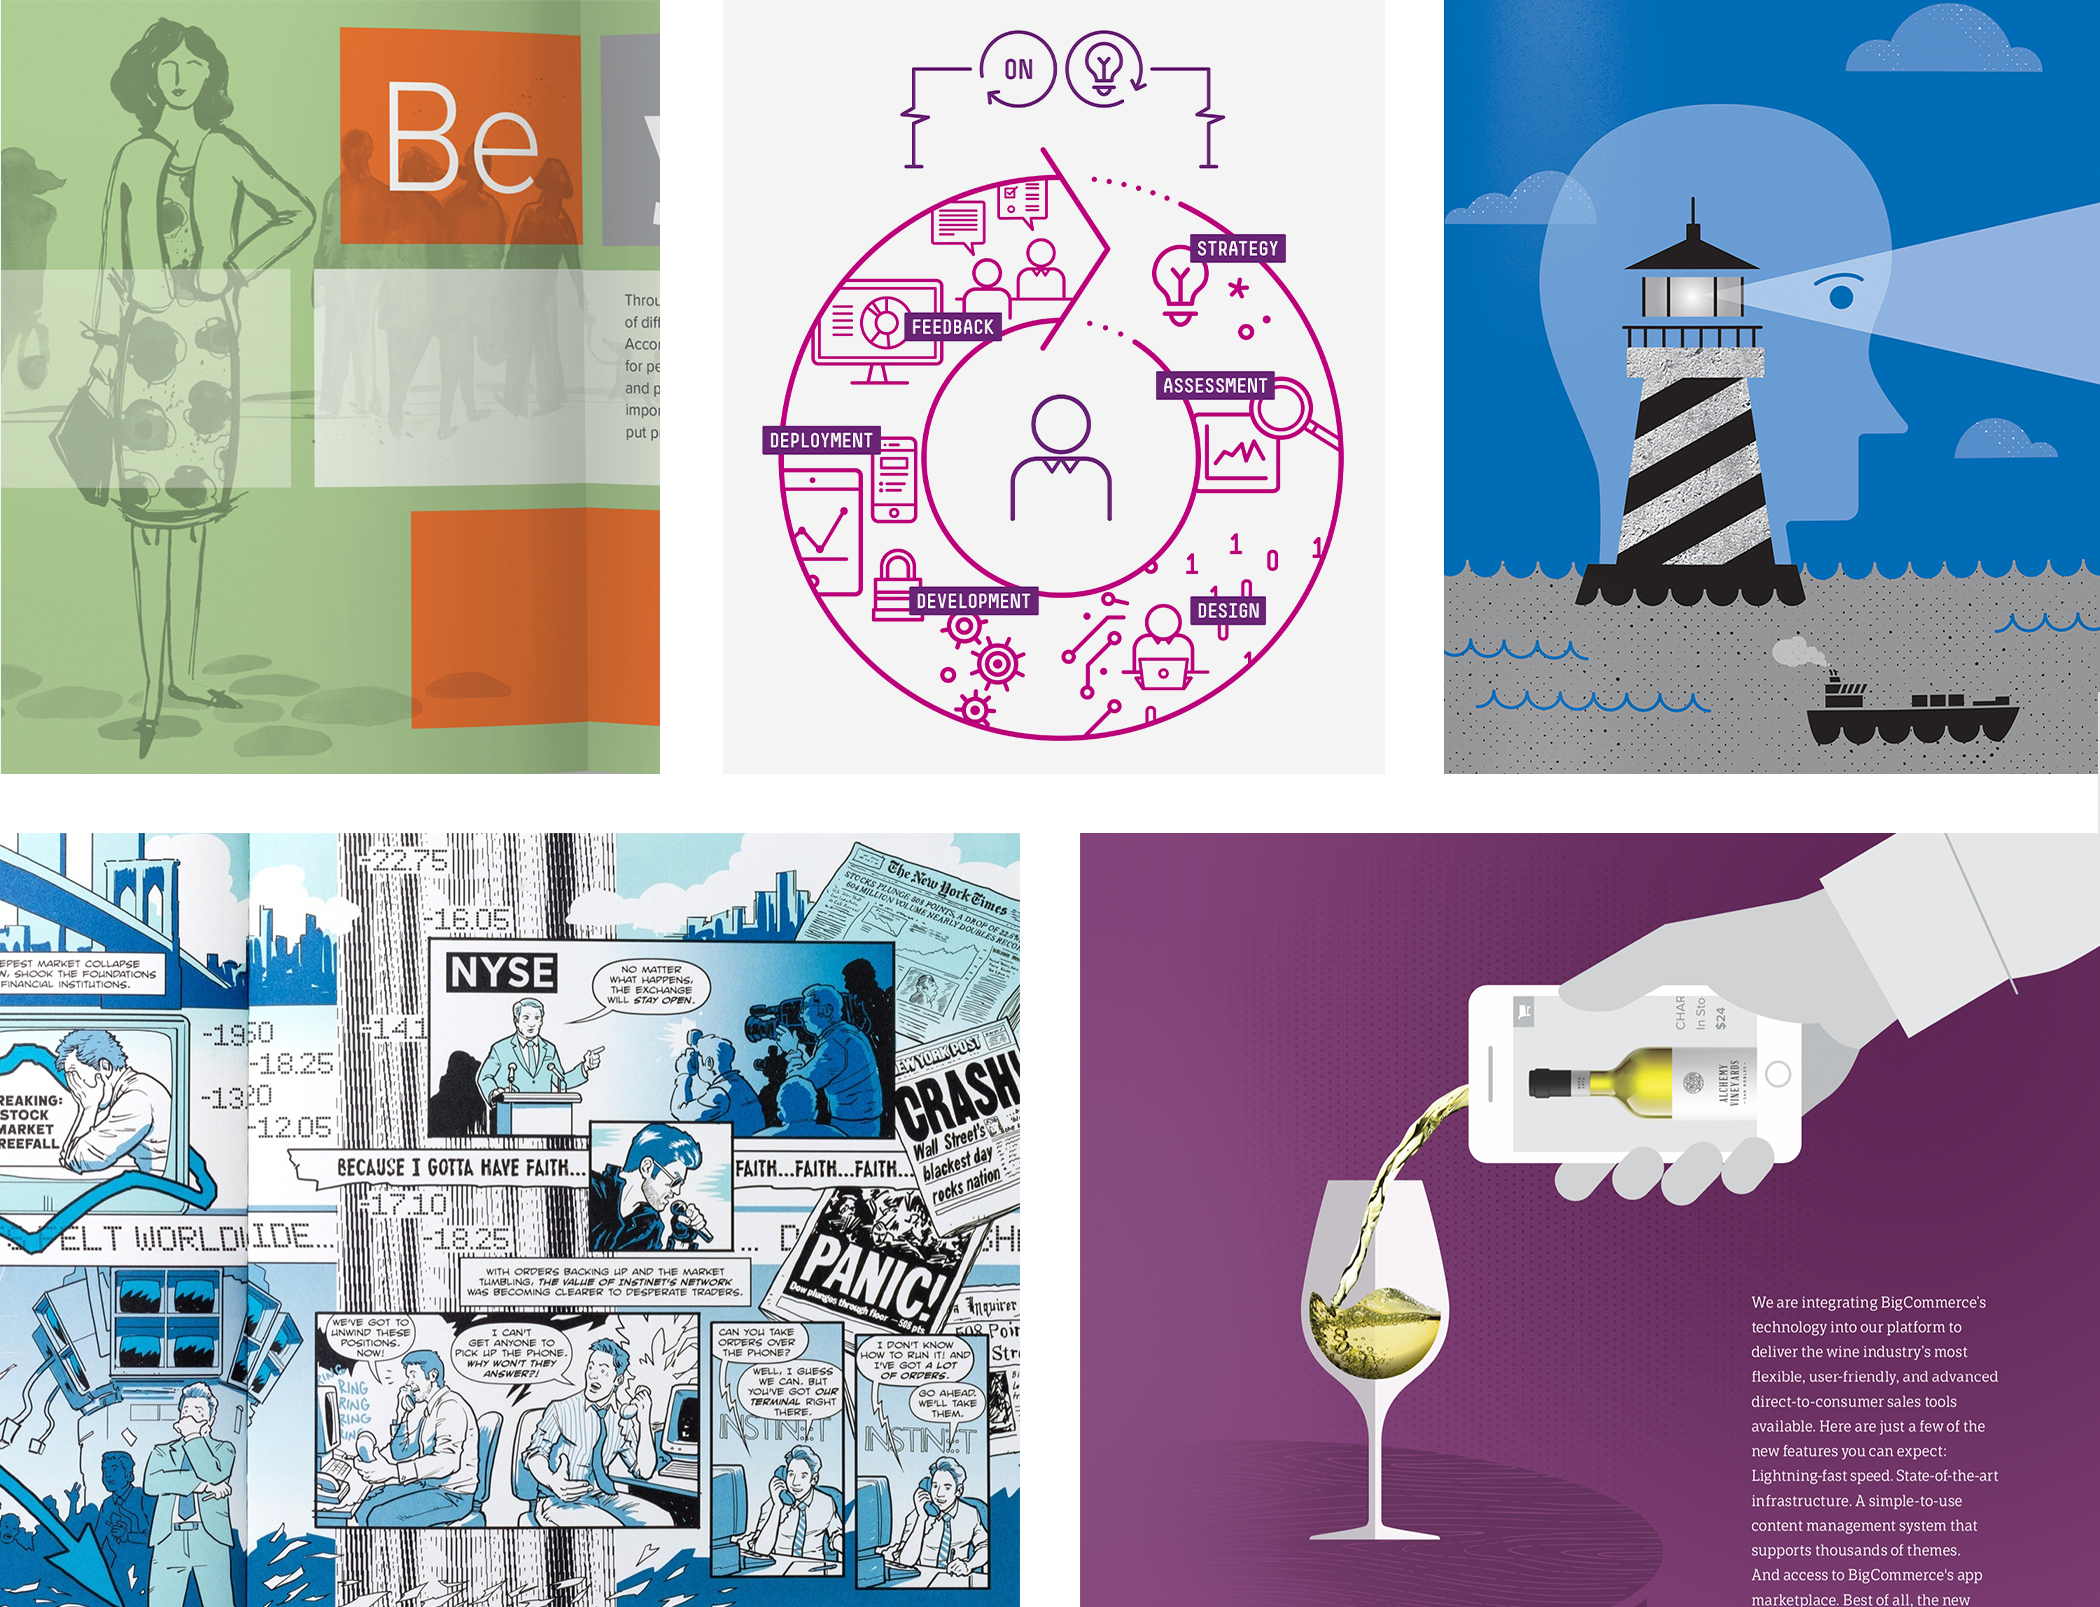 A collection of illustration images from various companies